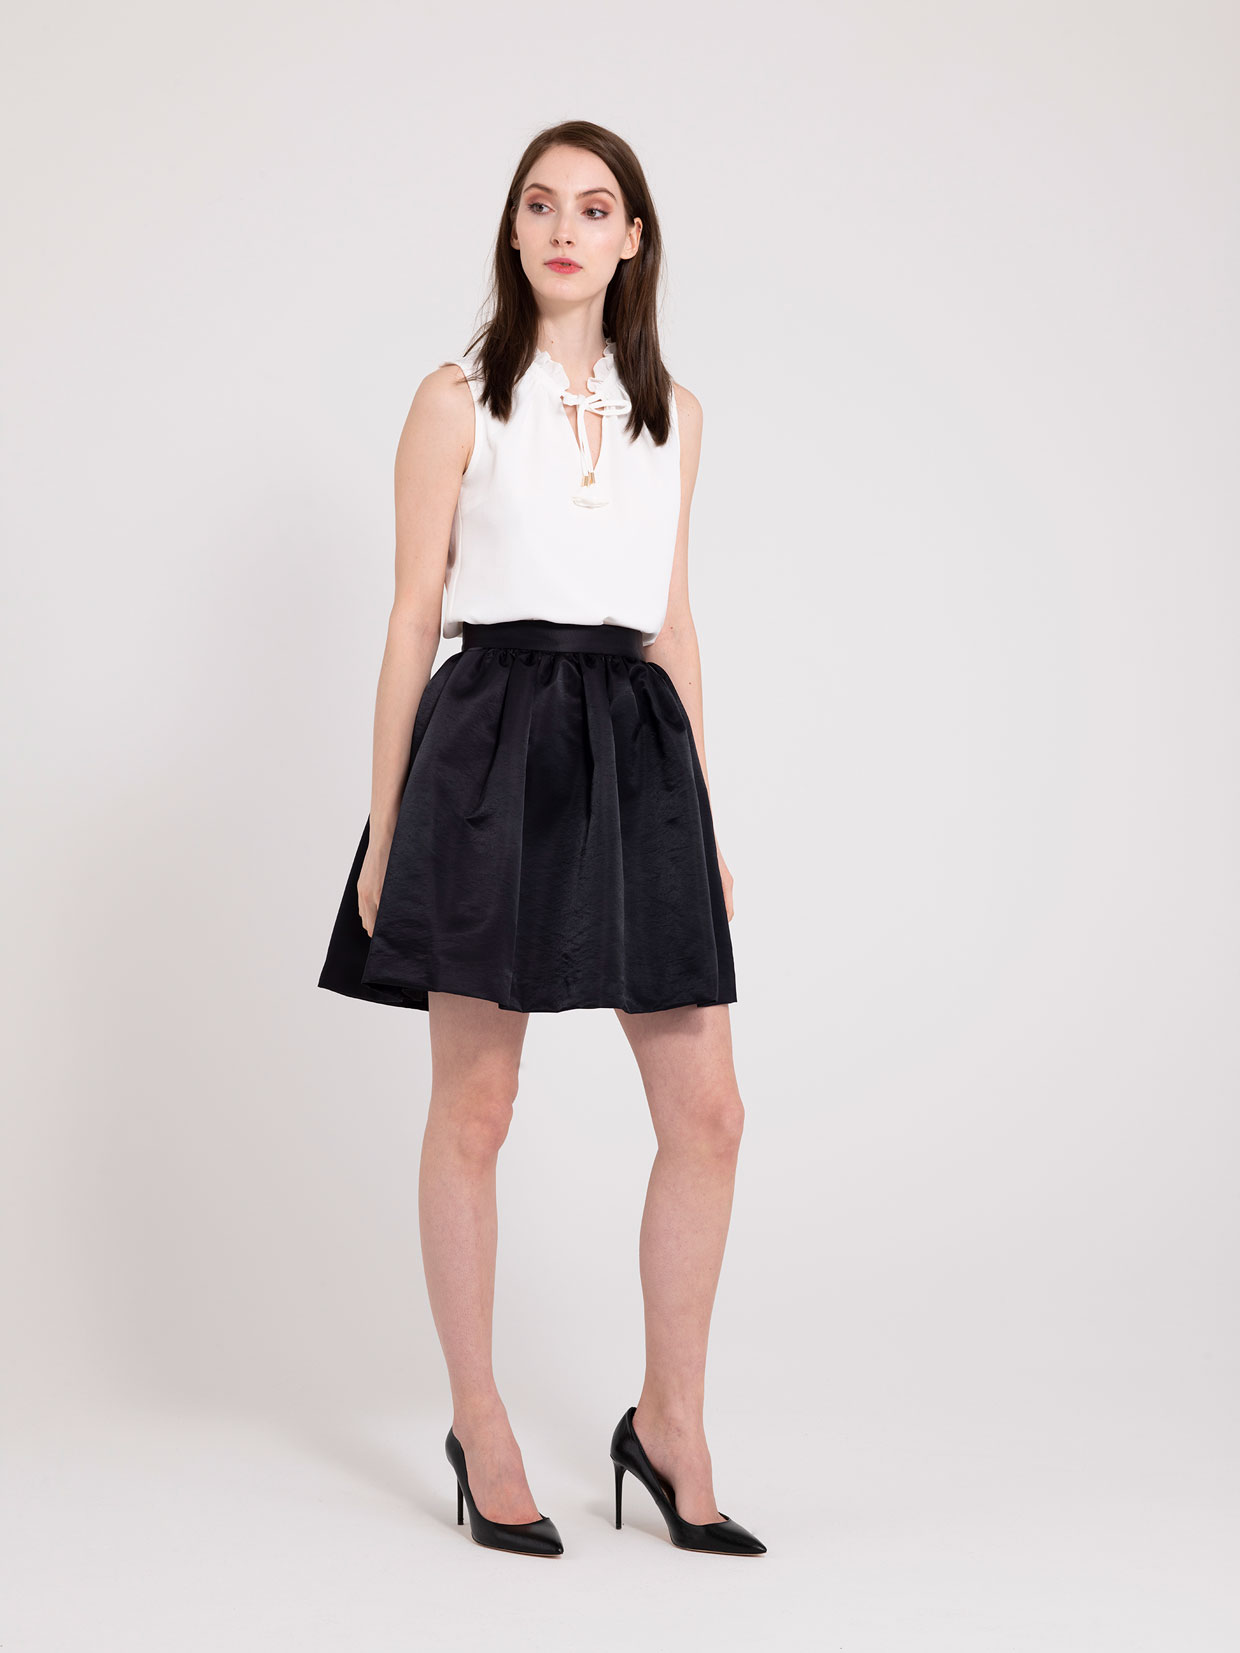 Lucy_Skirt_Black